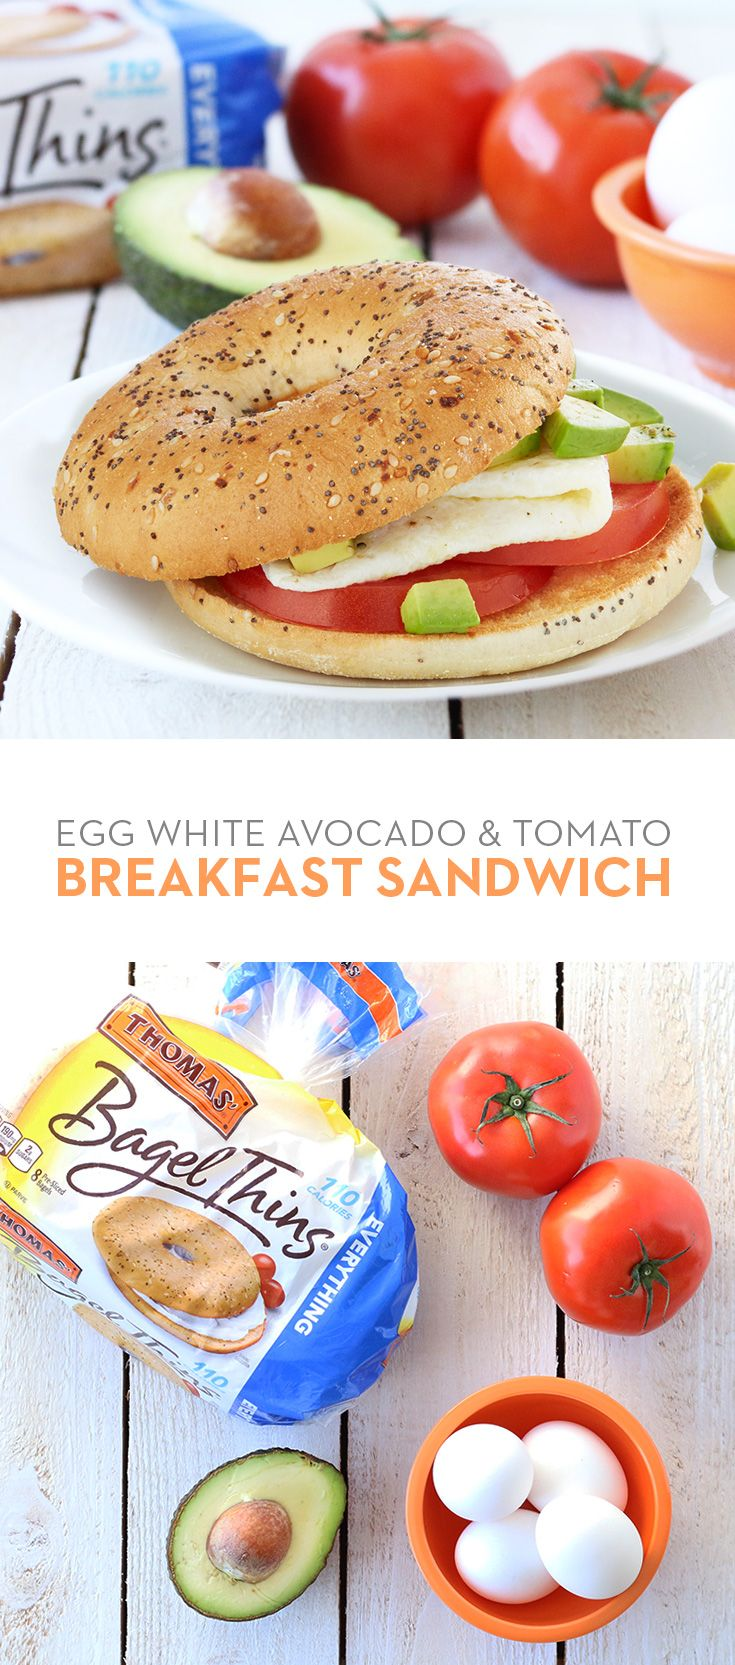 Update an old classic creation with Thomas' Everything Bagel Thins bagels. Simply cook up an egg white, top with tomato and avocado, and presto you've got a delicious and nutritious breakfast to go.